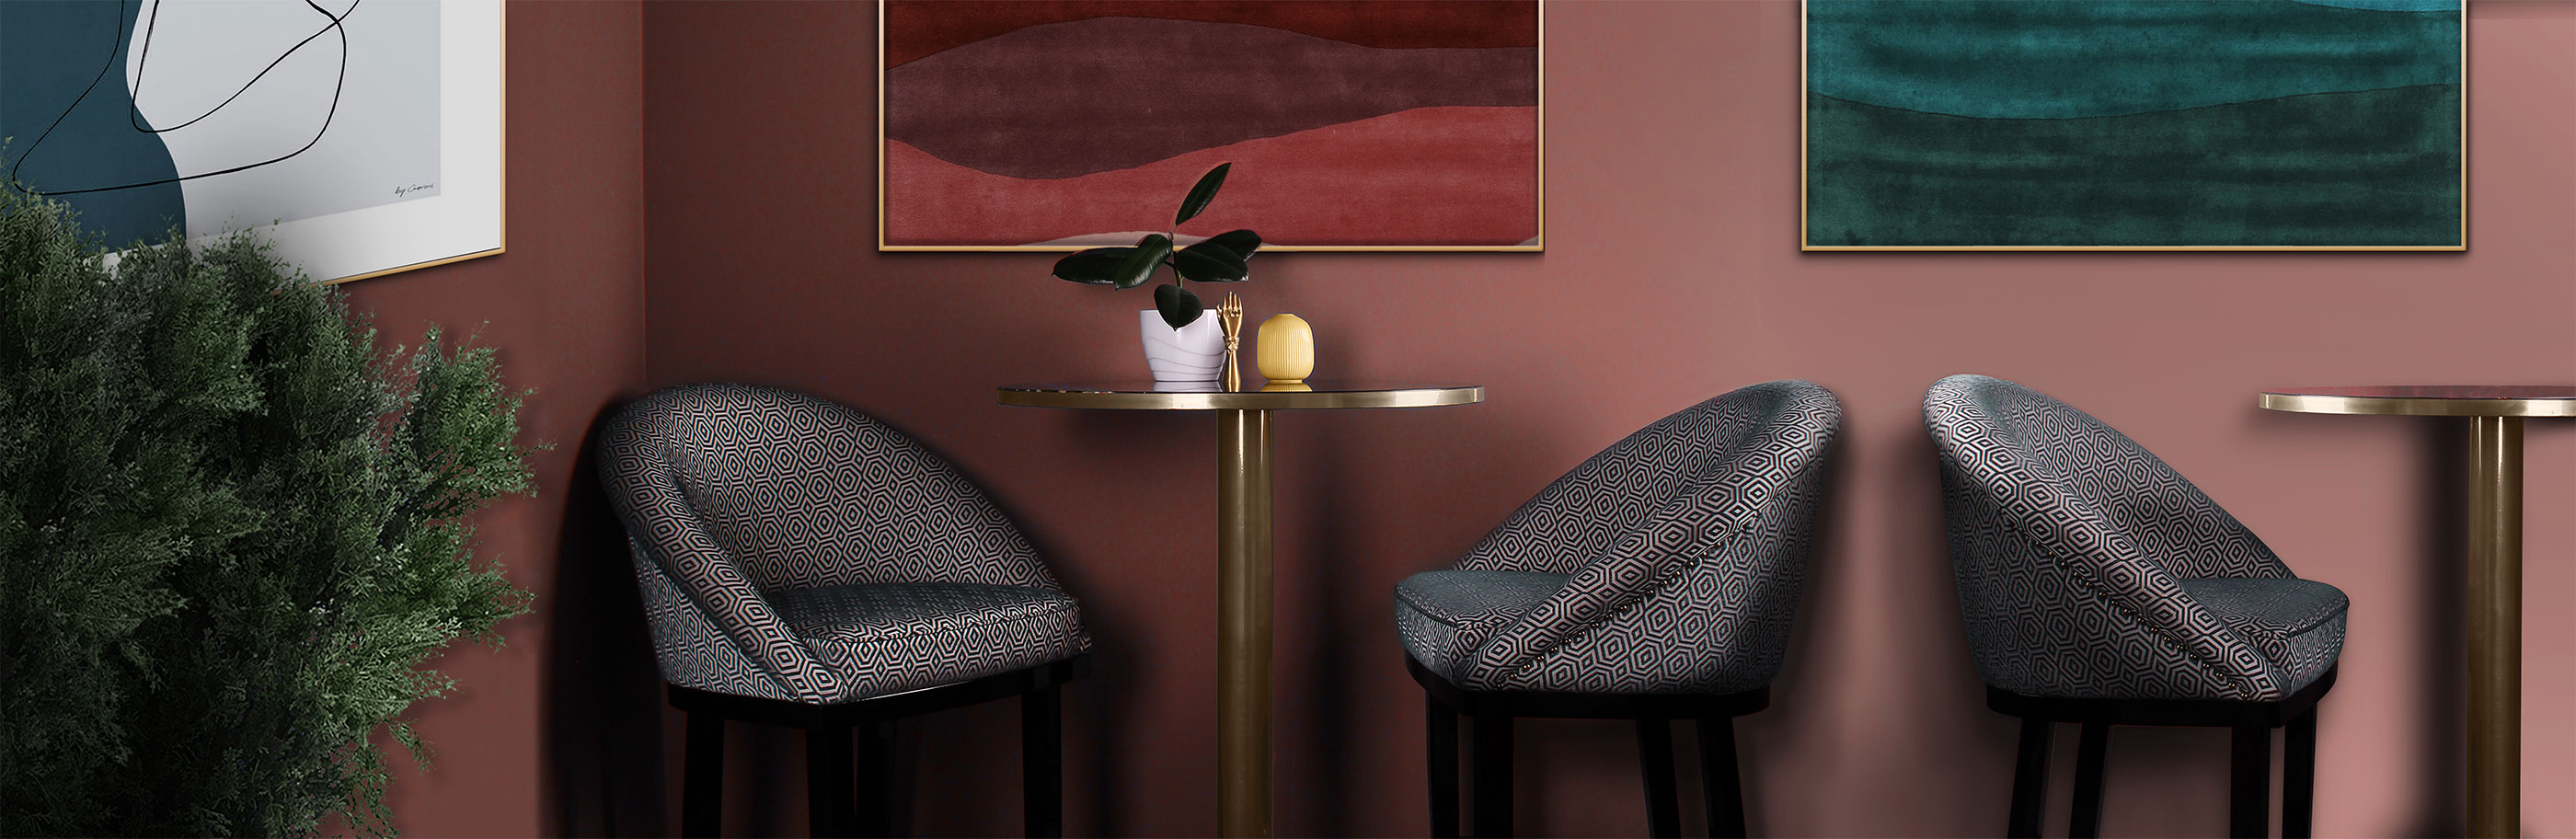 Kim Bar Chair in Bar ambience